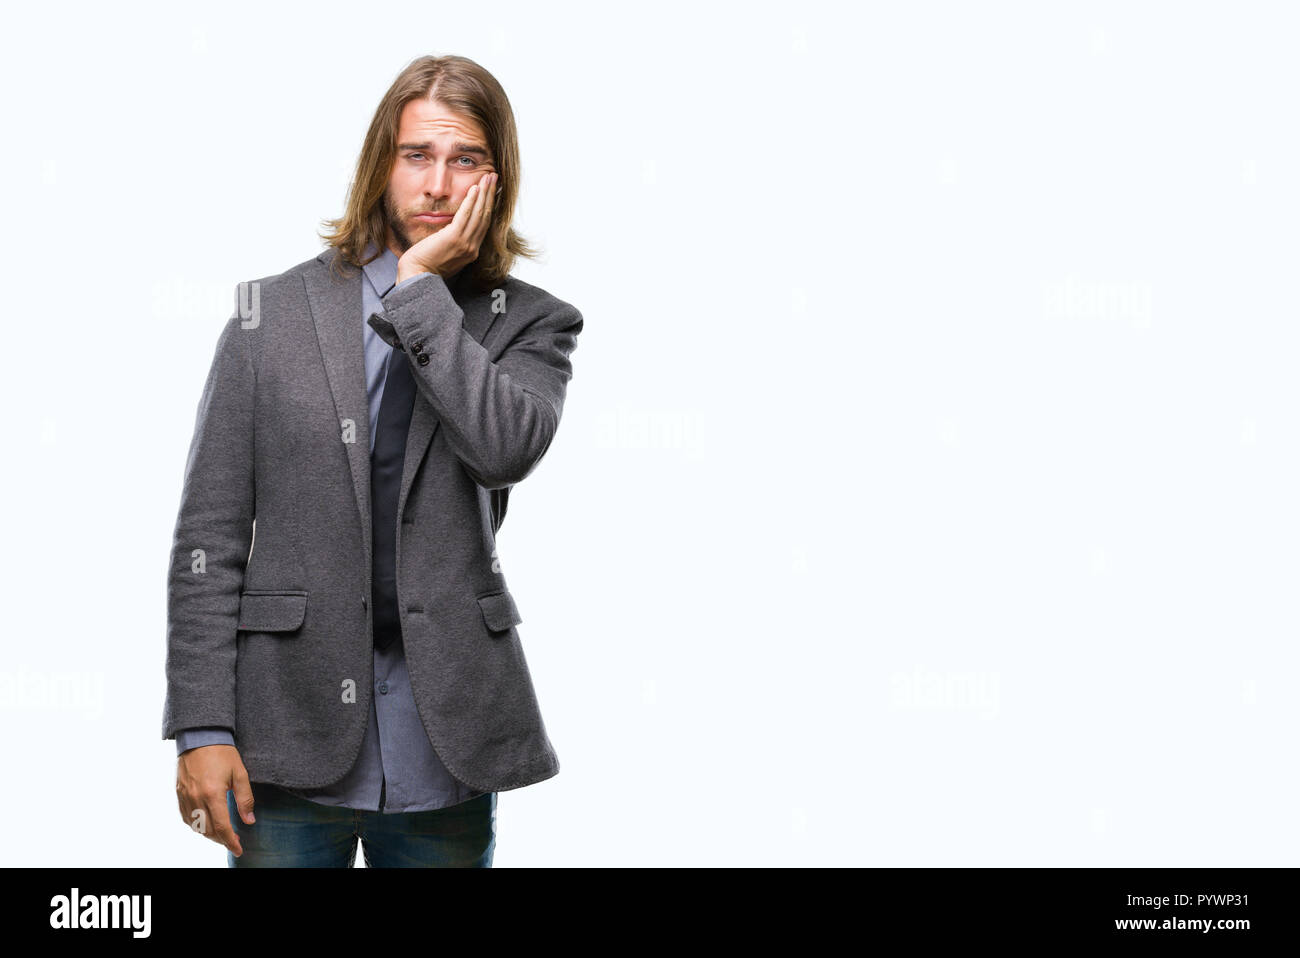 Young handsome business man with long hair over isolated background thinking looking tired and bored with depression problems with crossed arms. Stock Photo